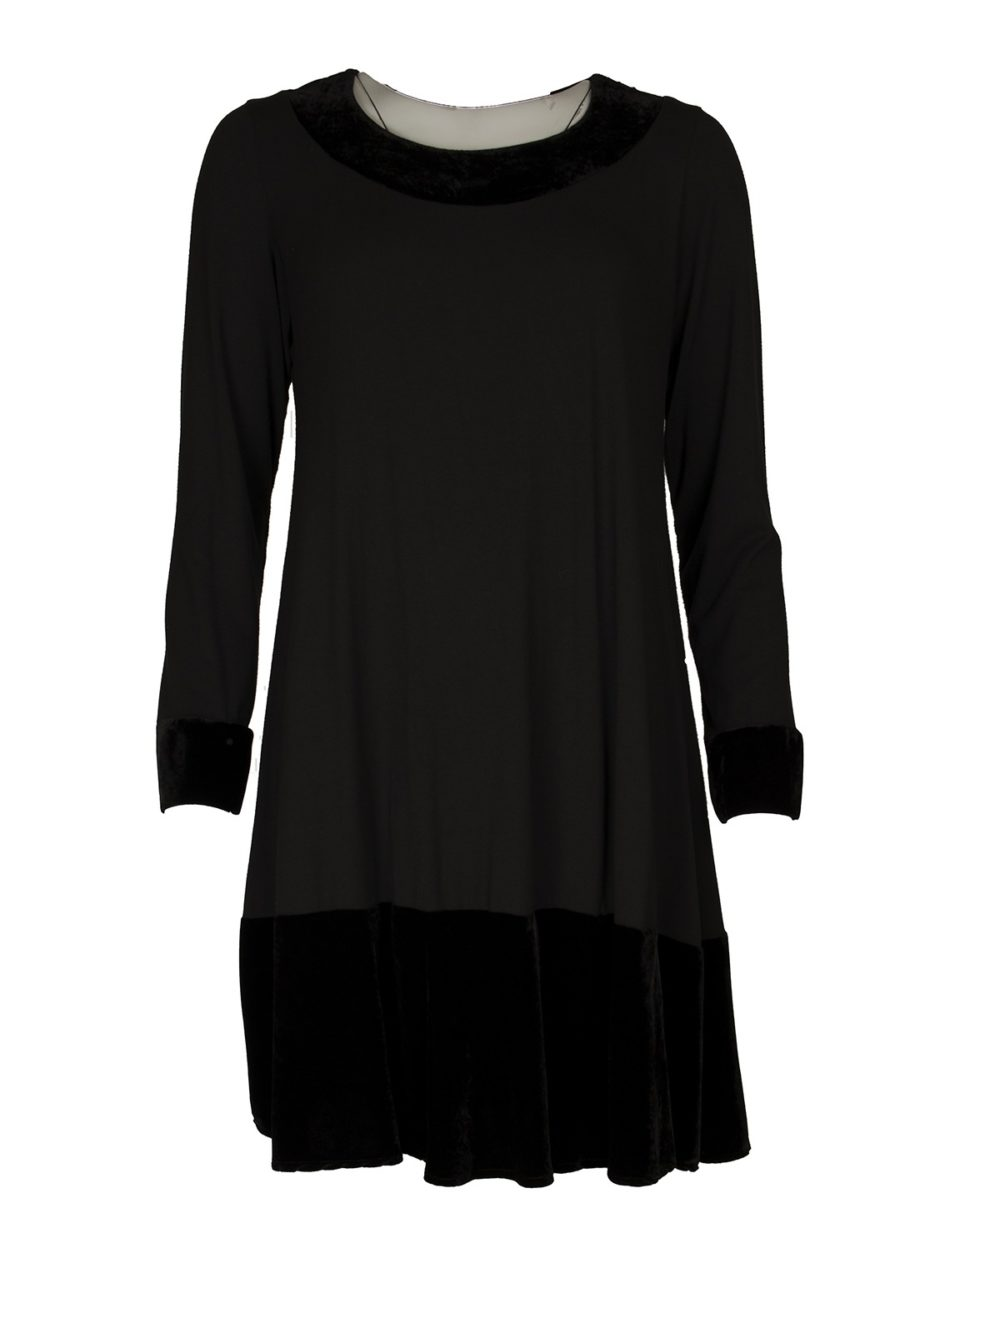 Velvet Trim Tunic Out of Xile Women's Clothing Katie Kerr